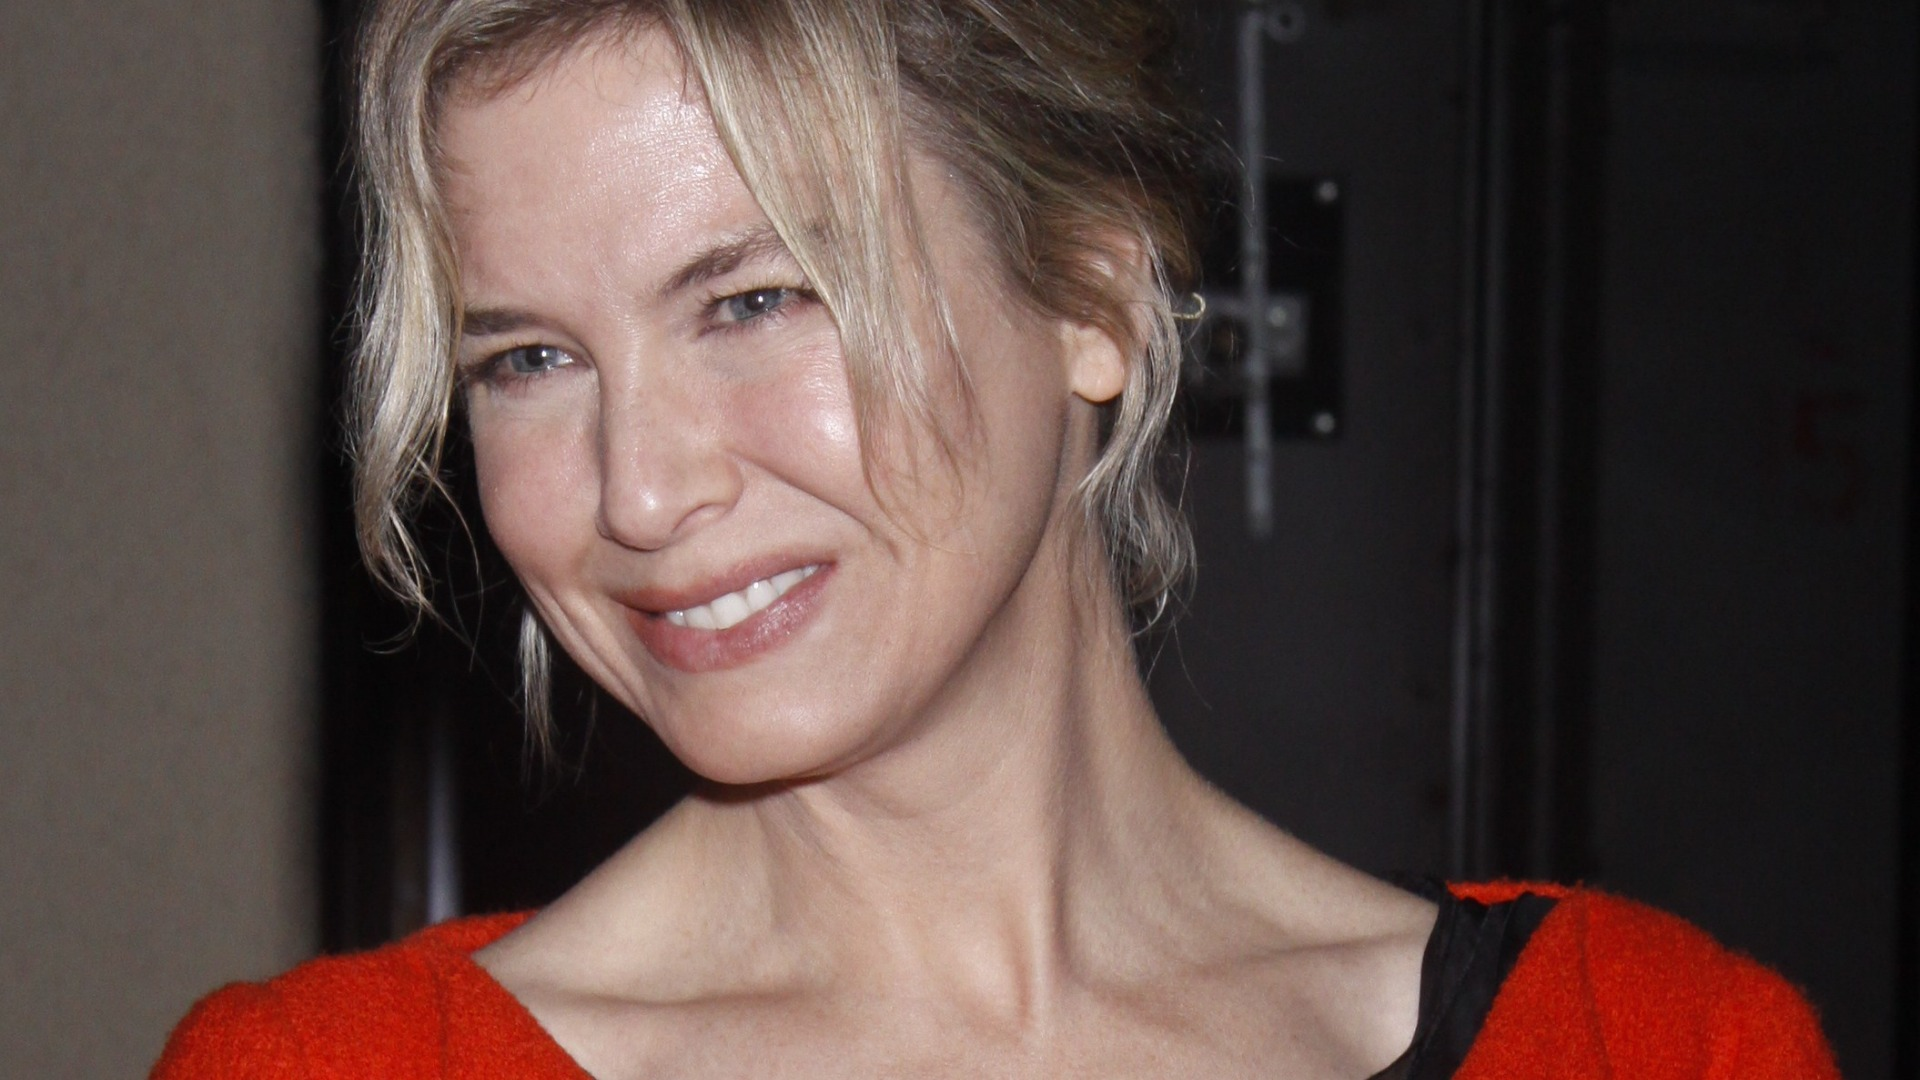 Renee Zellweger face before she dramatically altered it